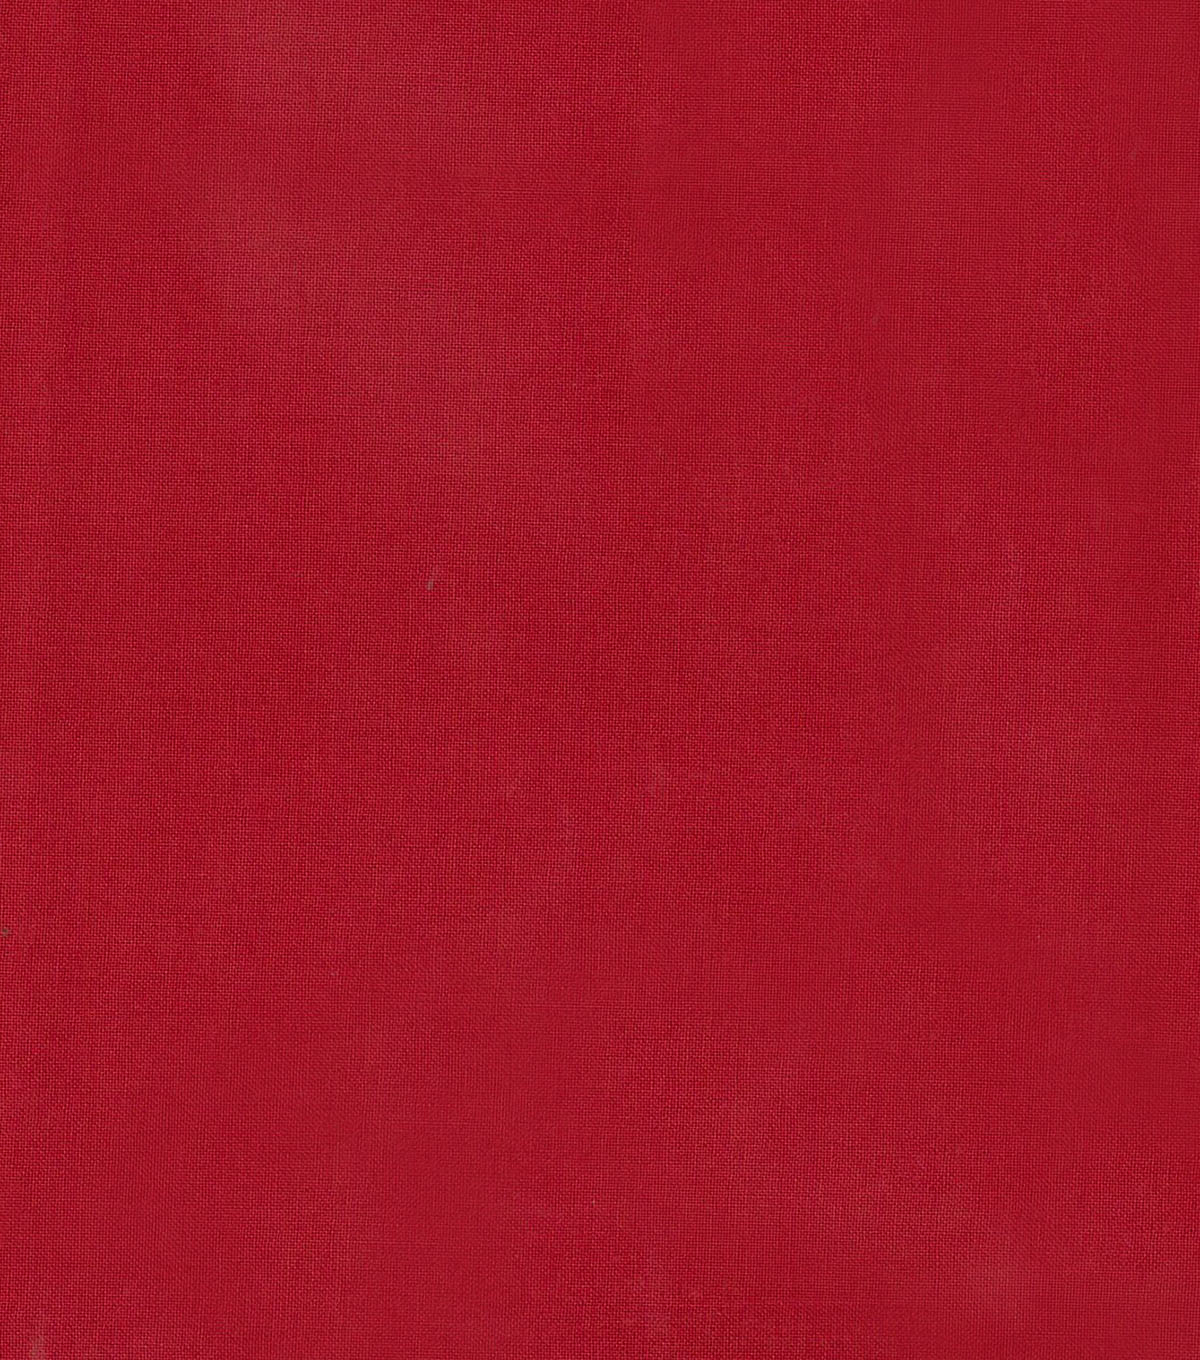 Wide Quilt Cotton Fabric-Solids, Rio Red